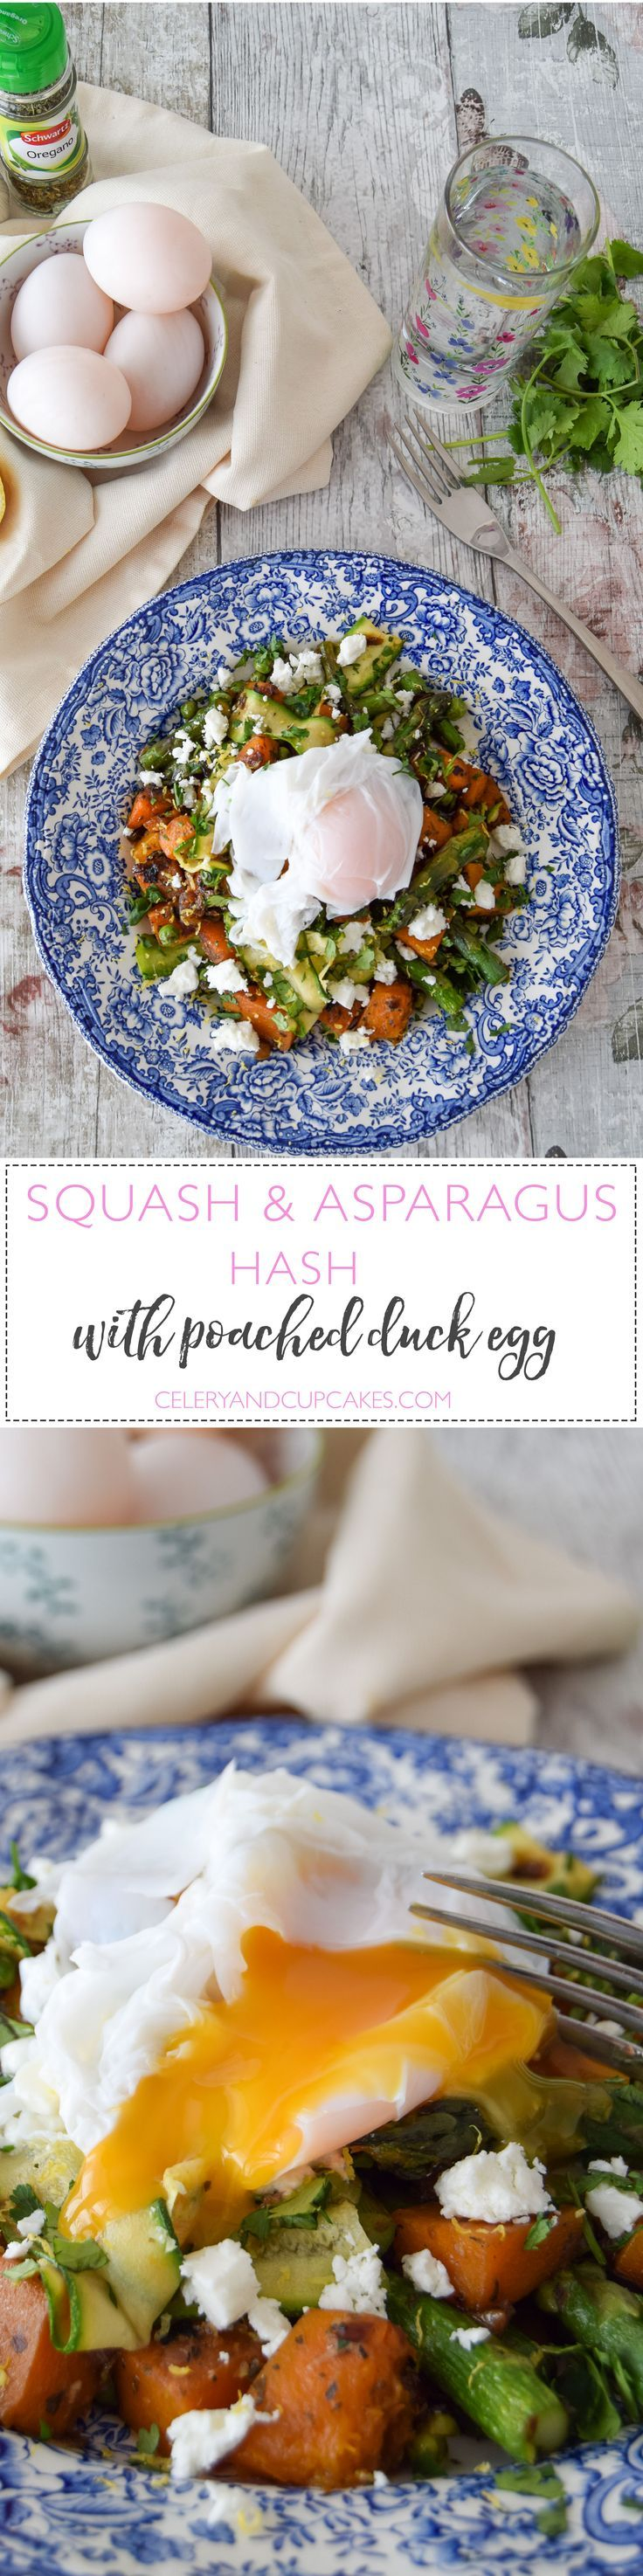 Delicious asparagus paired with butternut squash and courgette ribbons, simply flavoured with dried oregano, garlic and lemon zest makes a delicious bed for a poached duck egg, with its incredibly creamy yolk.